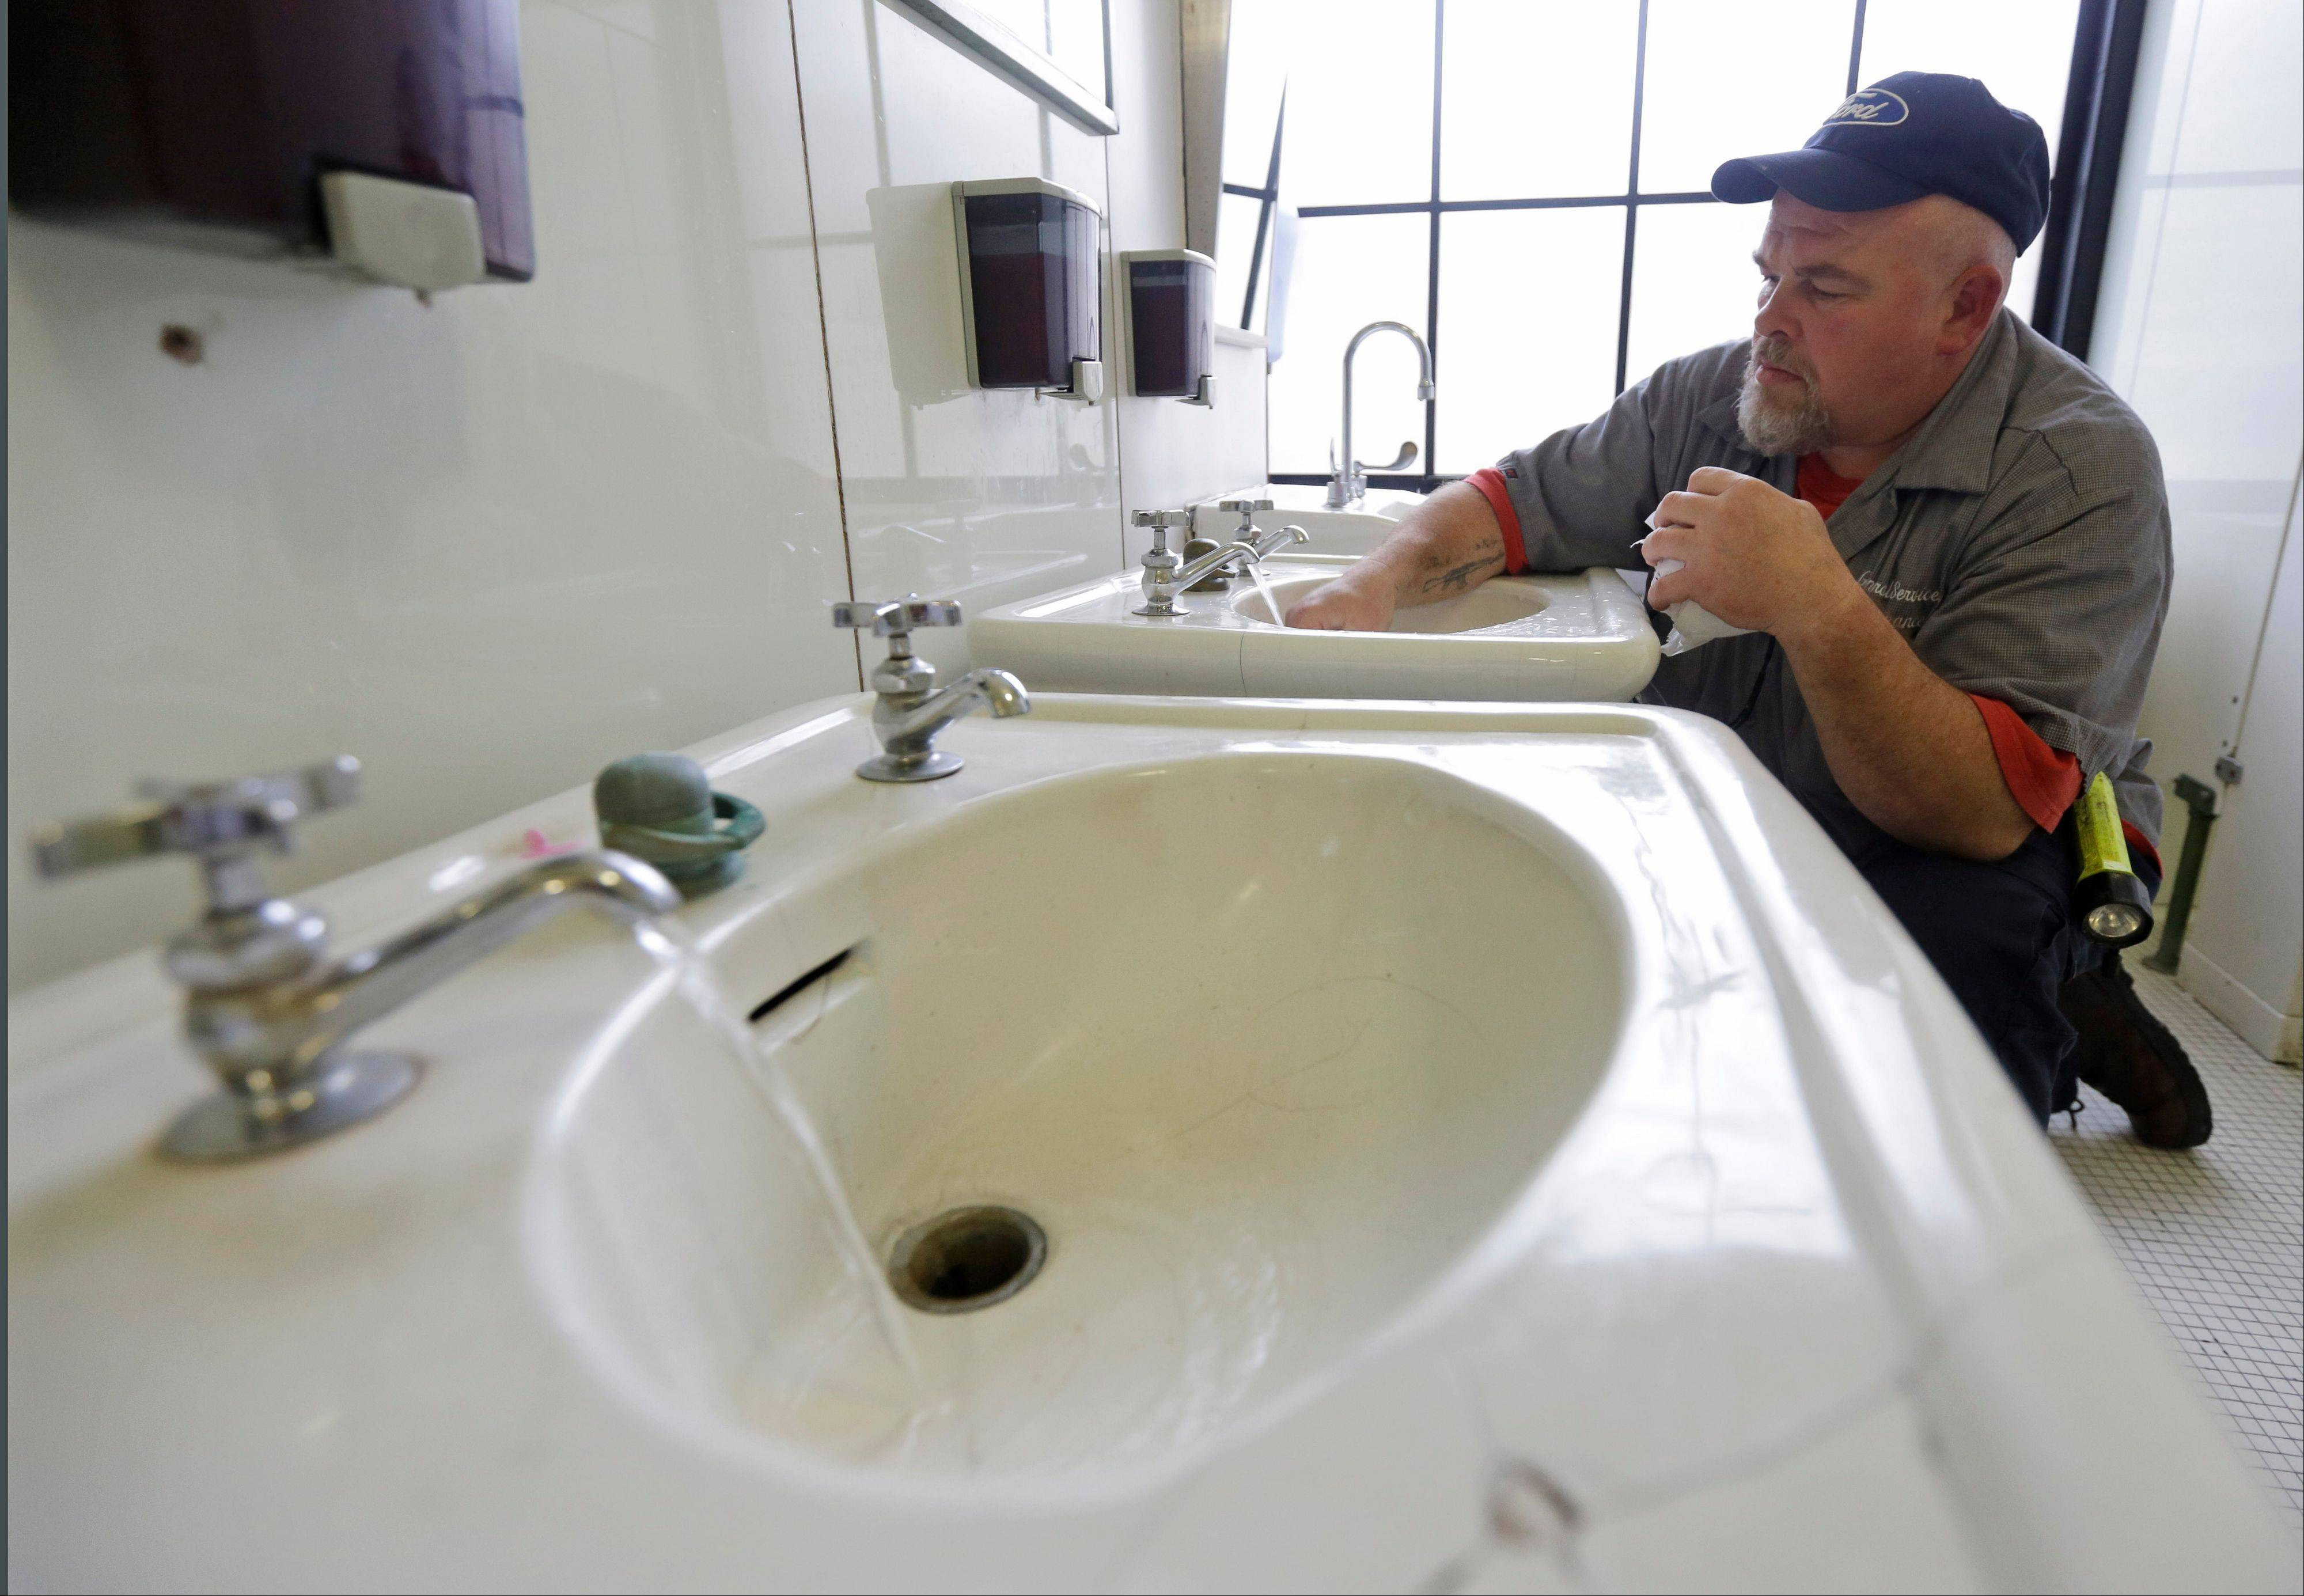 Al Jones of the West Virginia department of General Services flushes the water as he opens a rest room on the first floor of the State Capitol in Charleston, Va., Monday. Gov. Earl Tomblin announced that the water system is ready to be flushed by zones with safe drinking water after the chemical spill on Jan. 9.